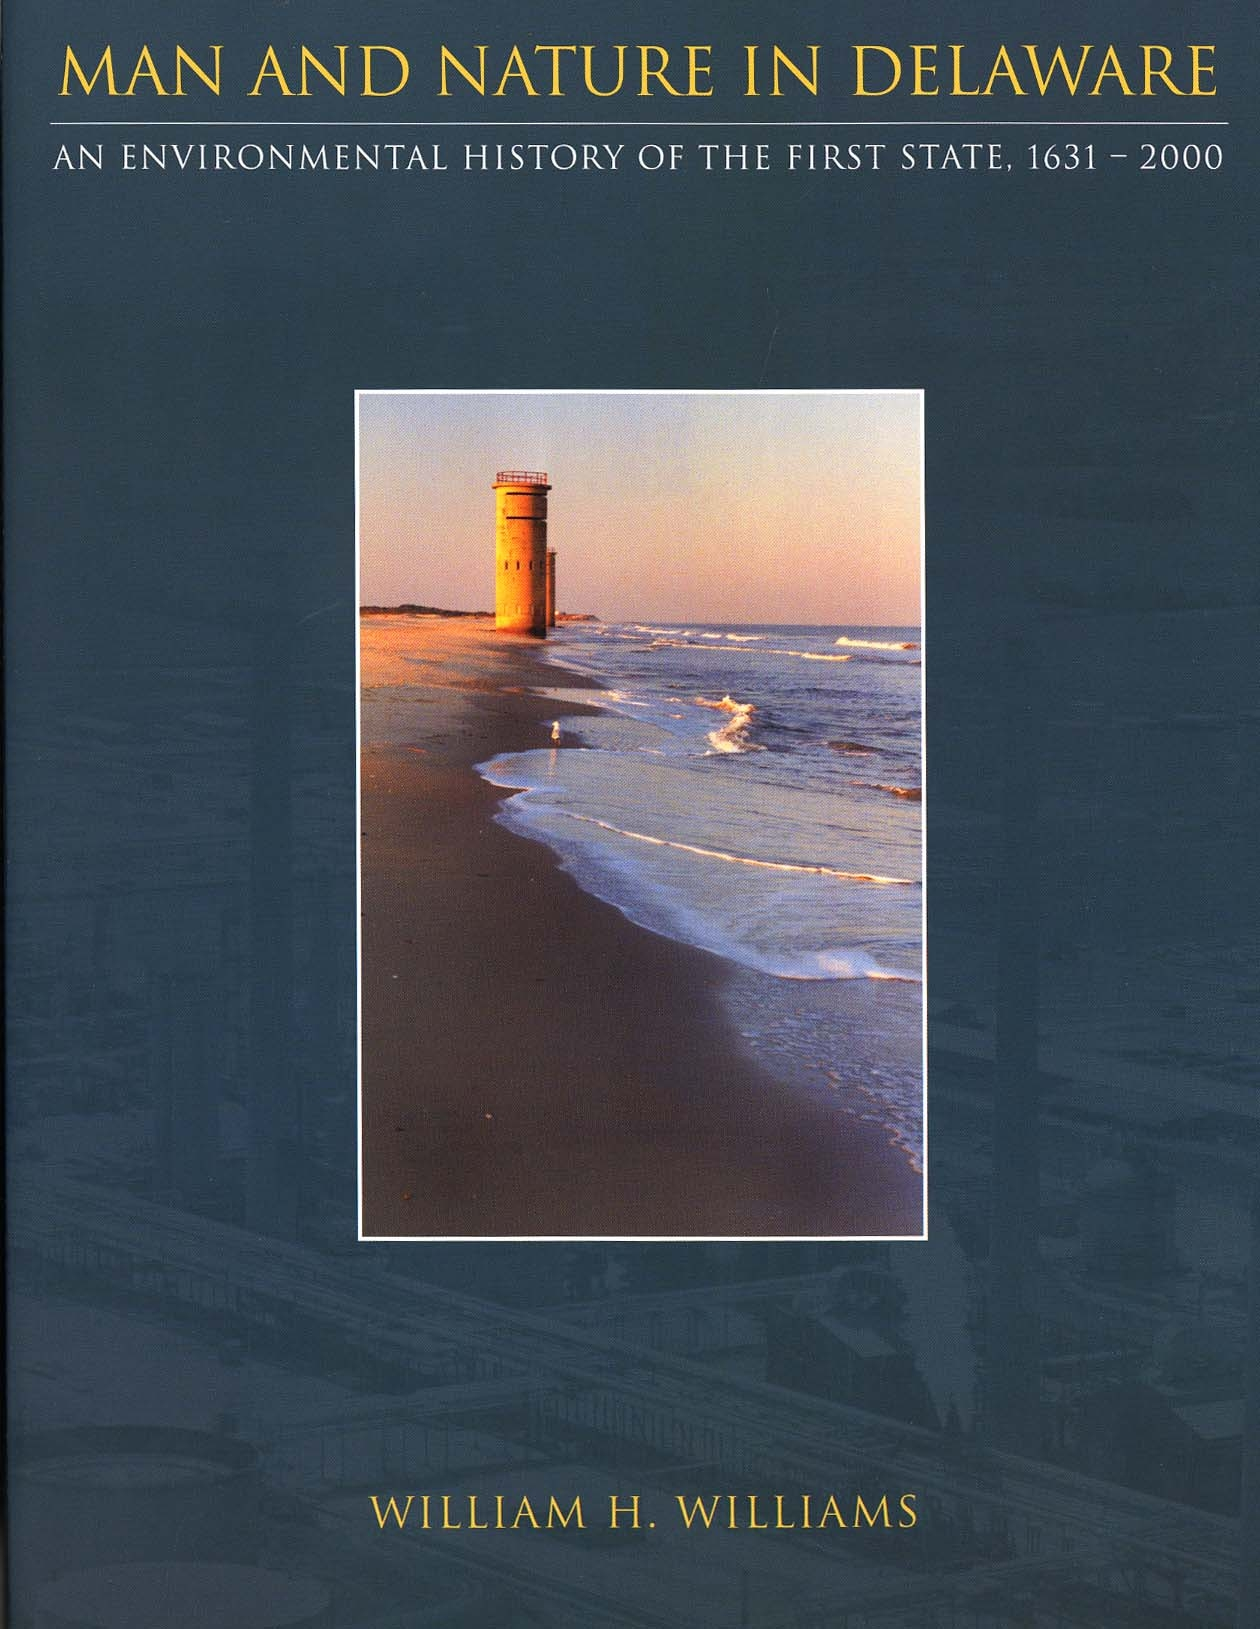 Man and Nature in Delaware: An Environmental History of Delaware, by William H. Williams, 2008, 301 pp., PAPERBACK. Prices reflect the cost of the book PLUS S&H fee of $5.00.